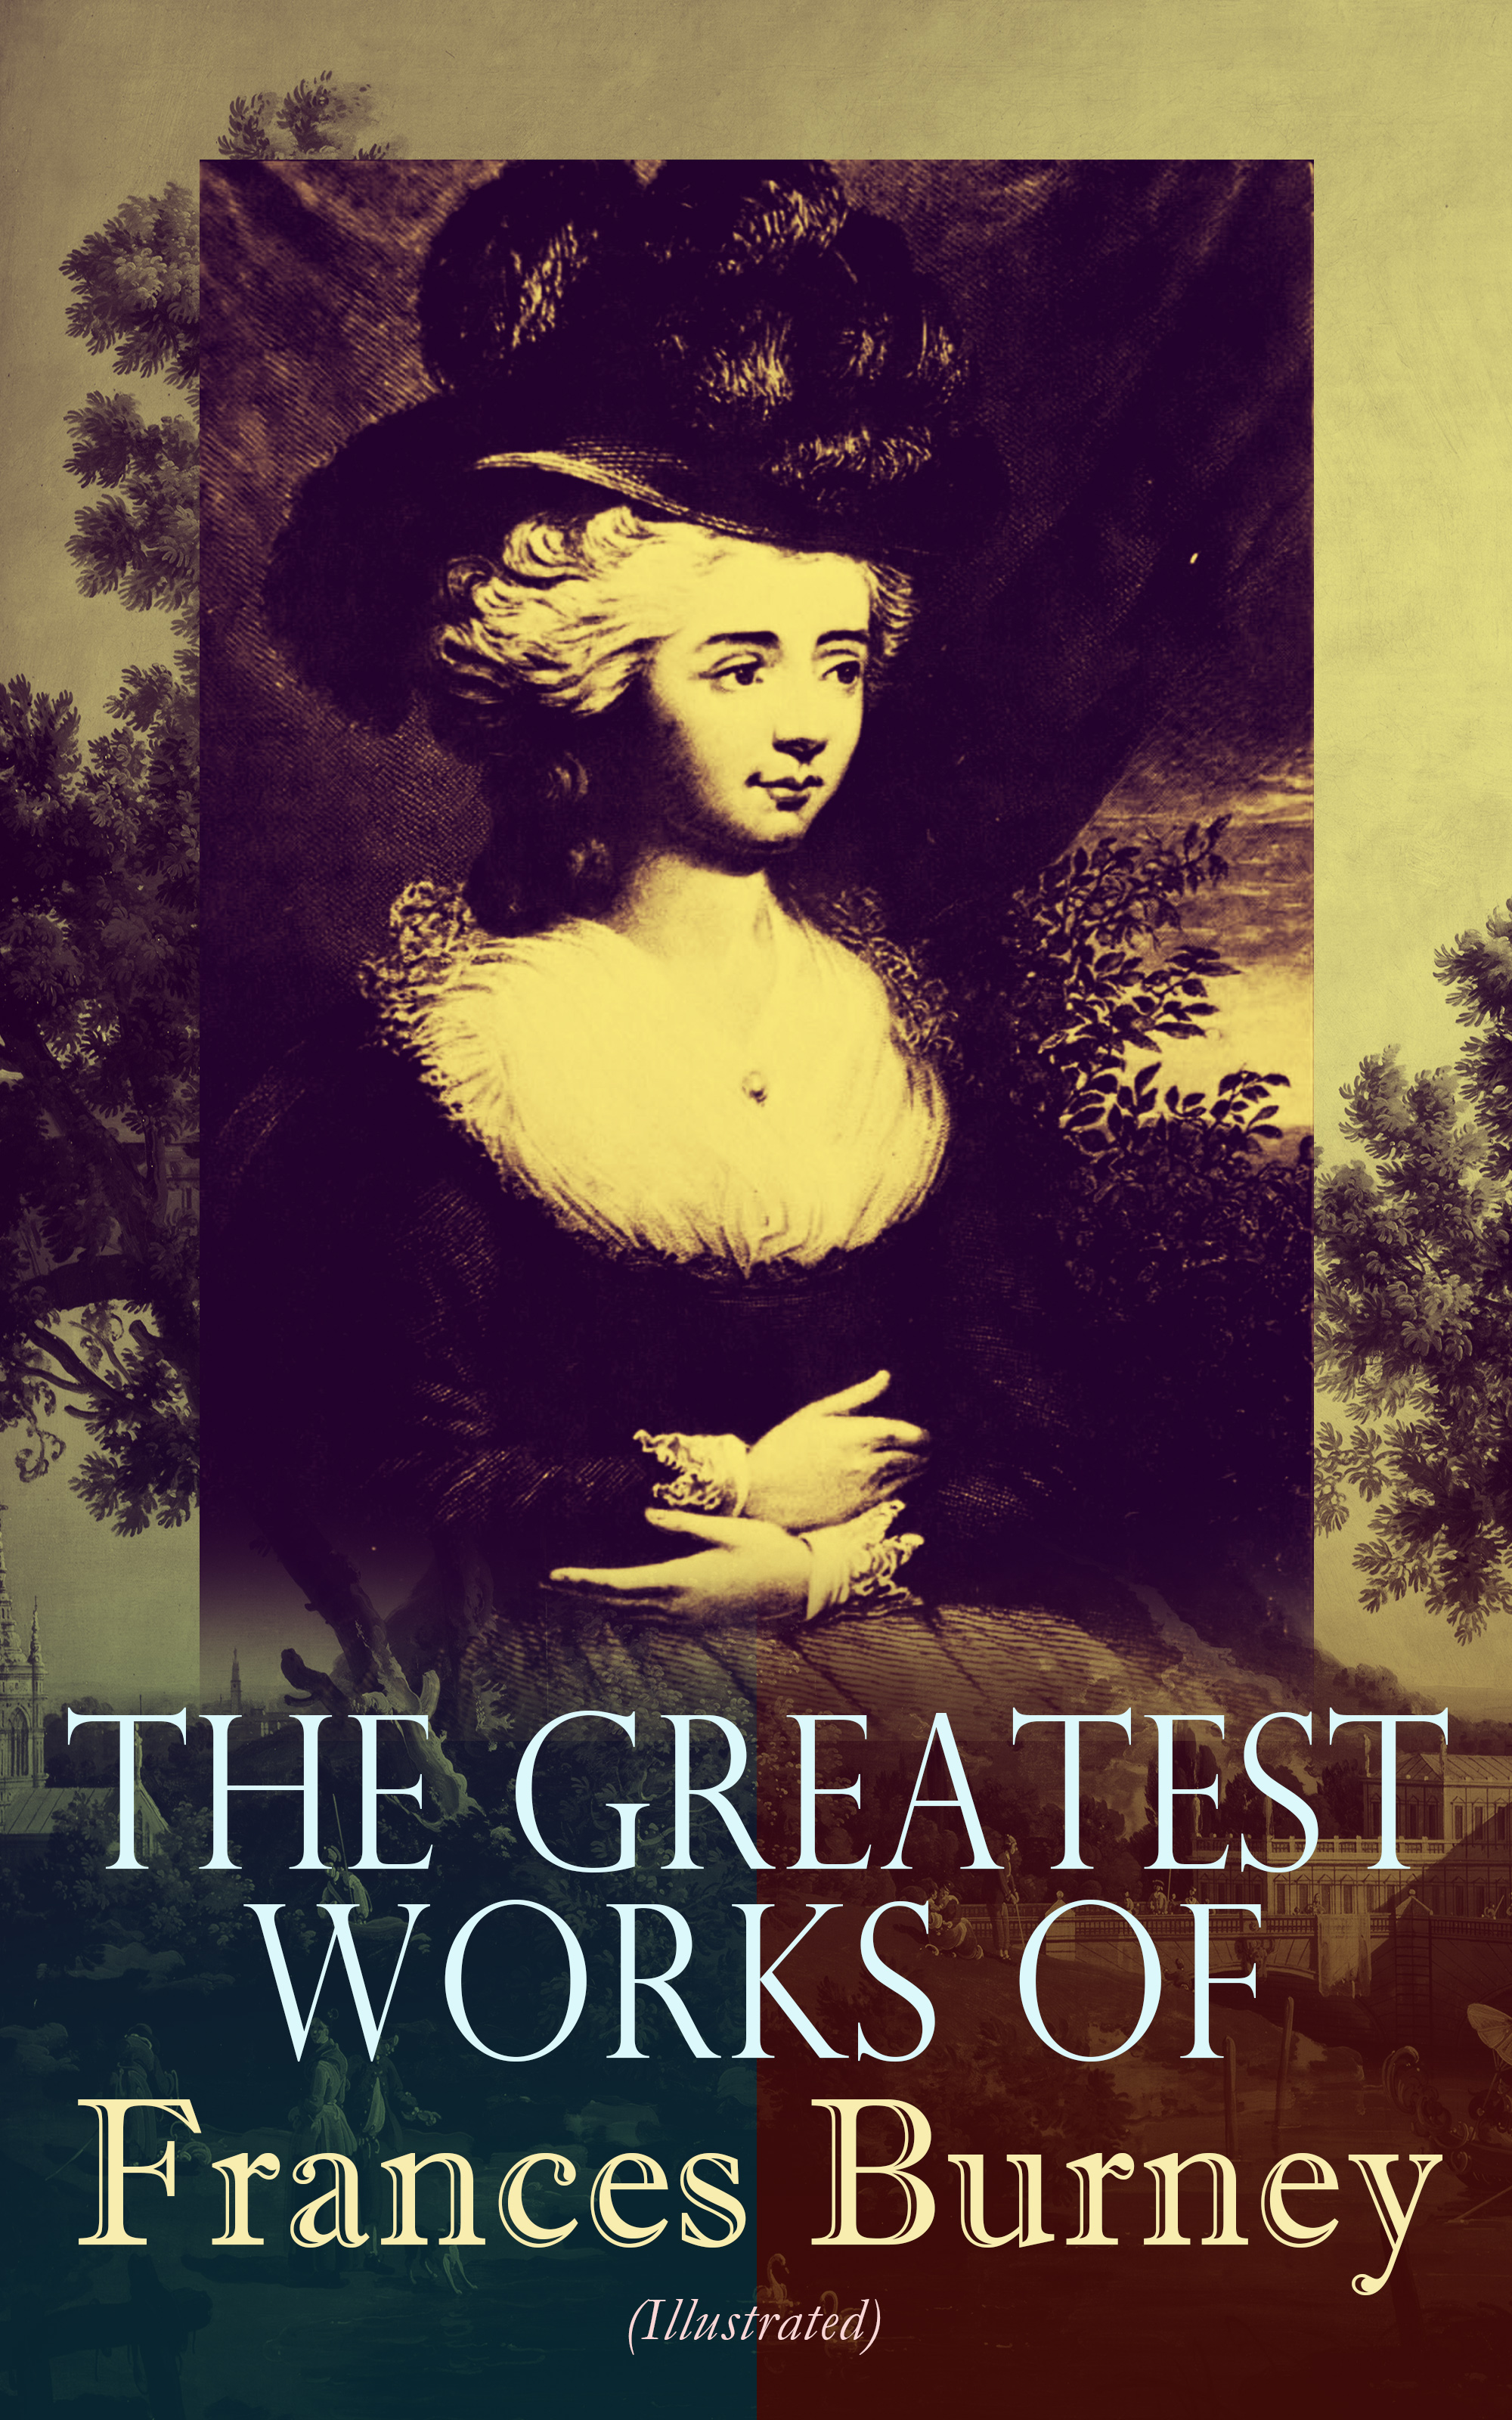 Frances Burney The Greatest Works of Frances Burney (Illustrated) cornford annie watkins frances gateway b1 workbook